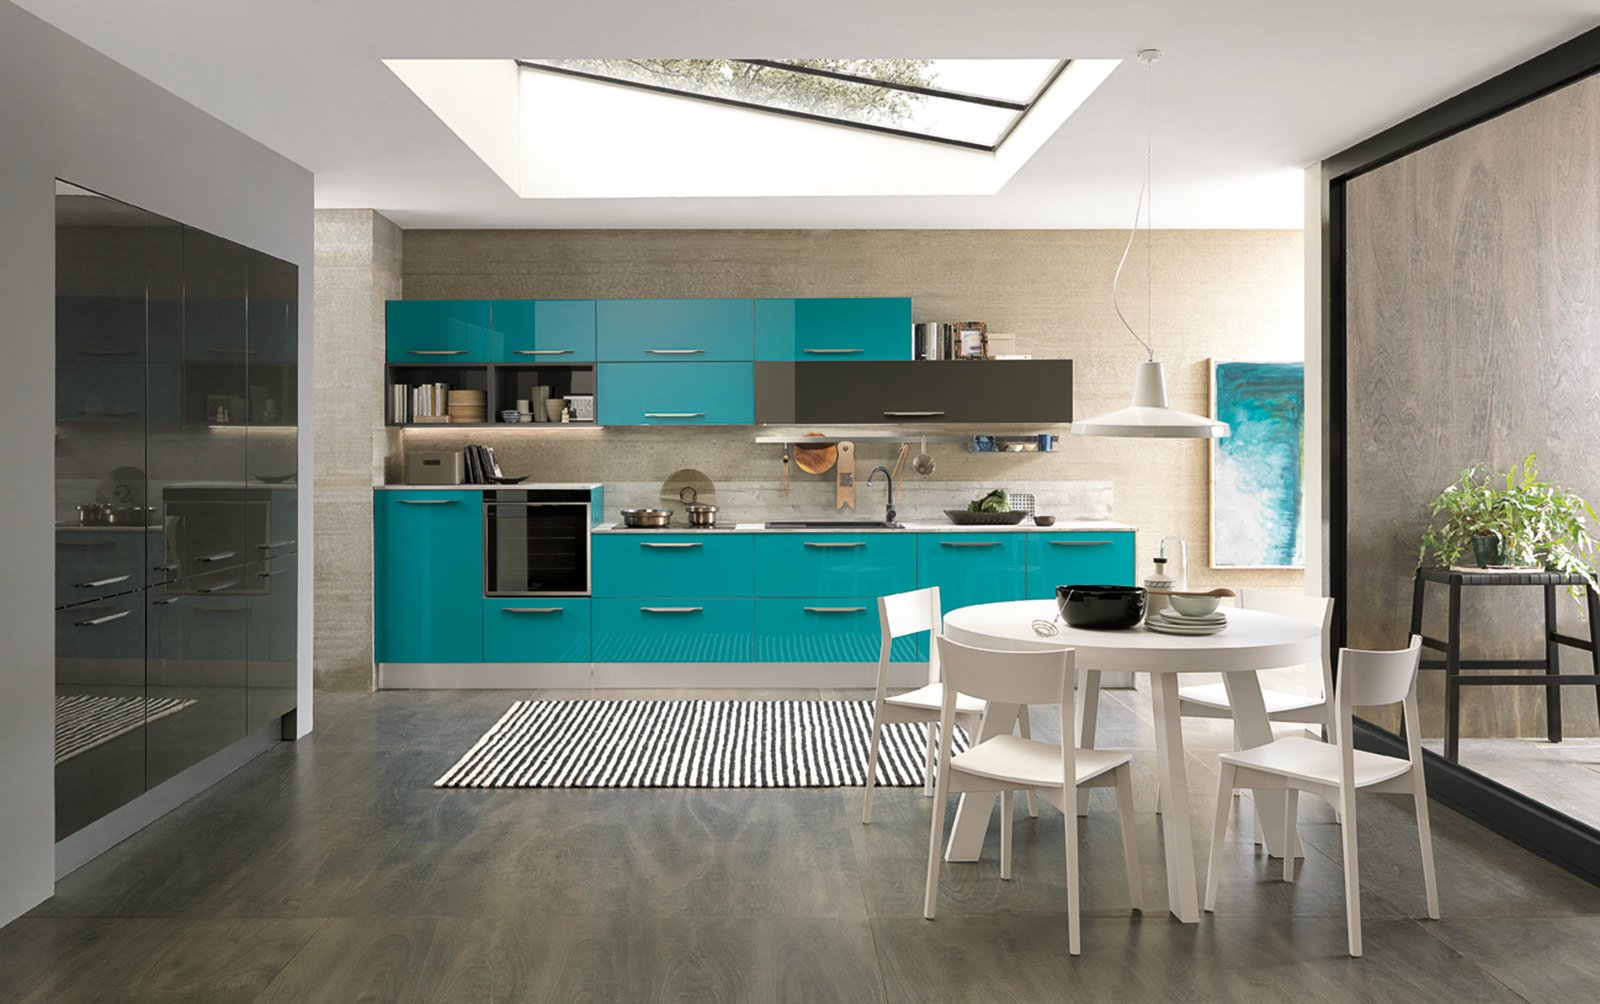 cucine colorate come un quadro contemporaneo cose di casa